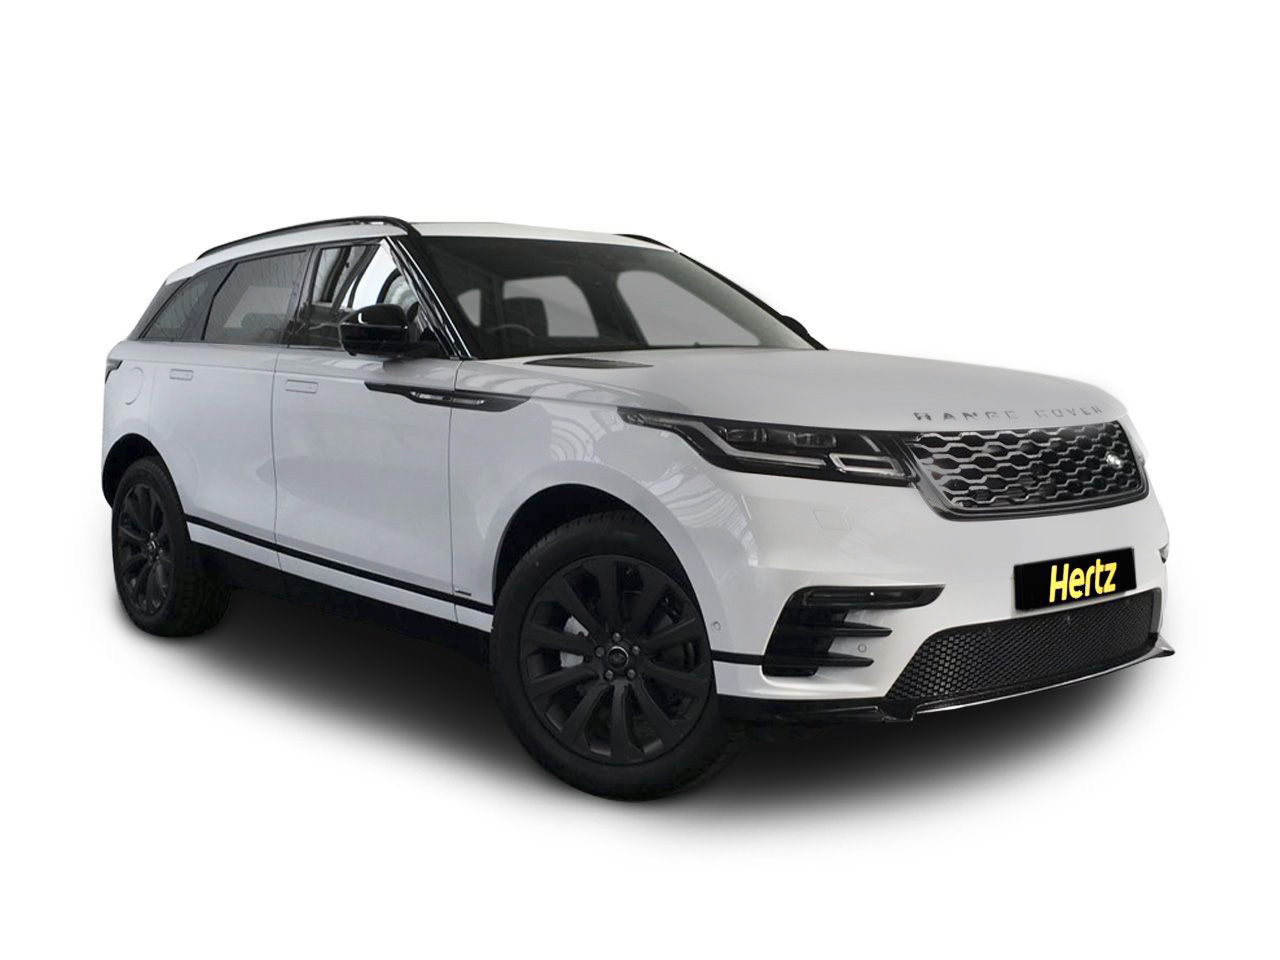 Range Rover Velar Car for hire